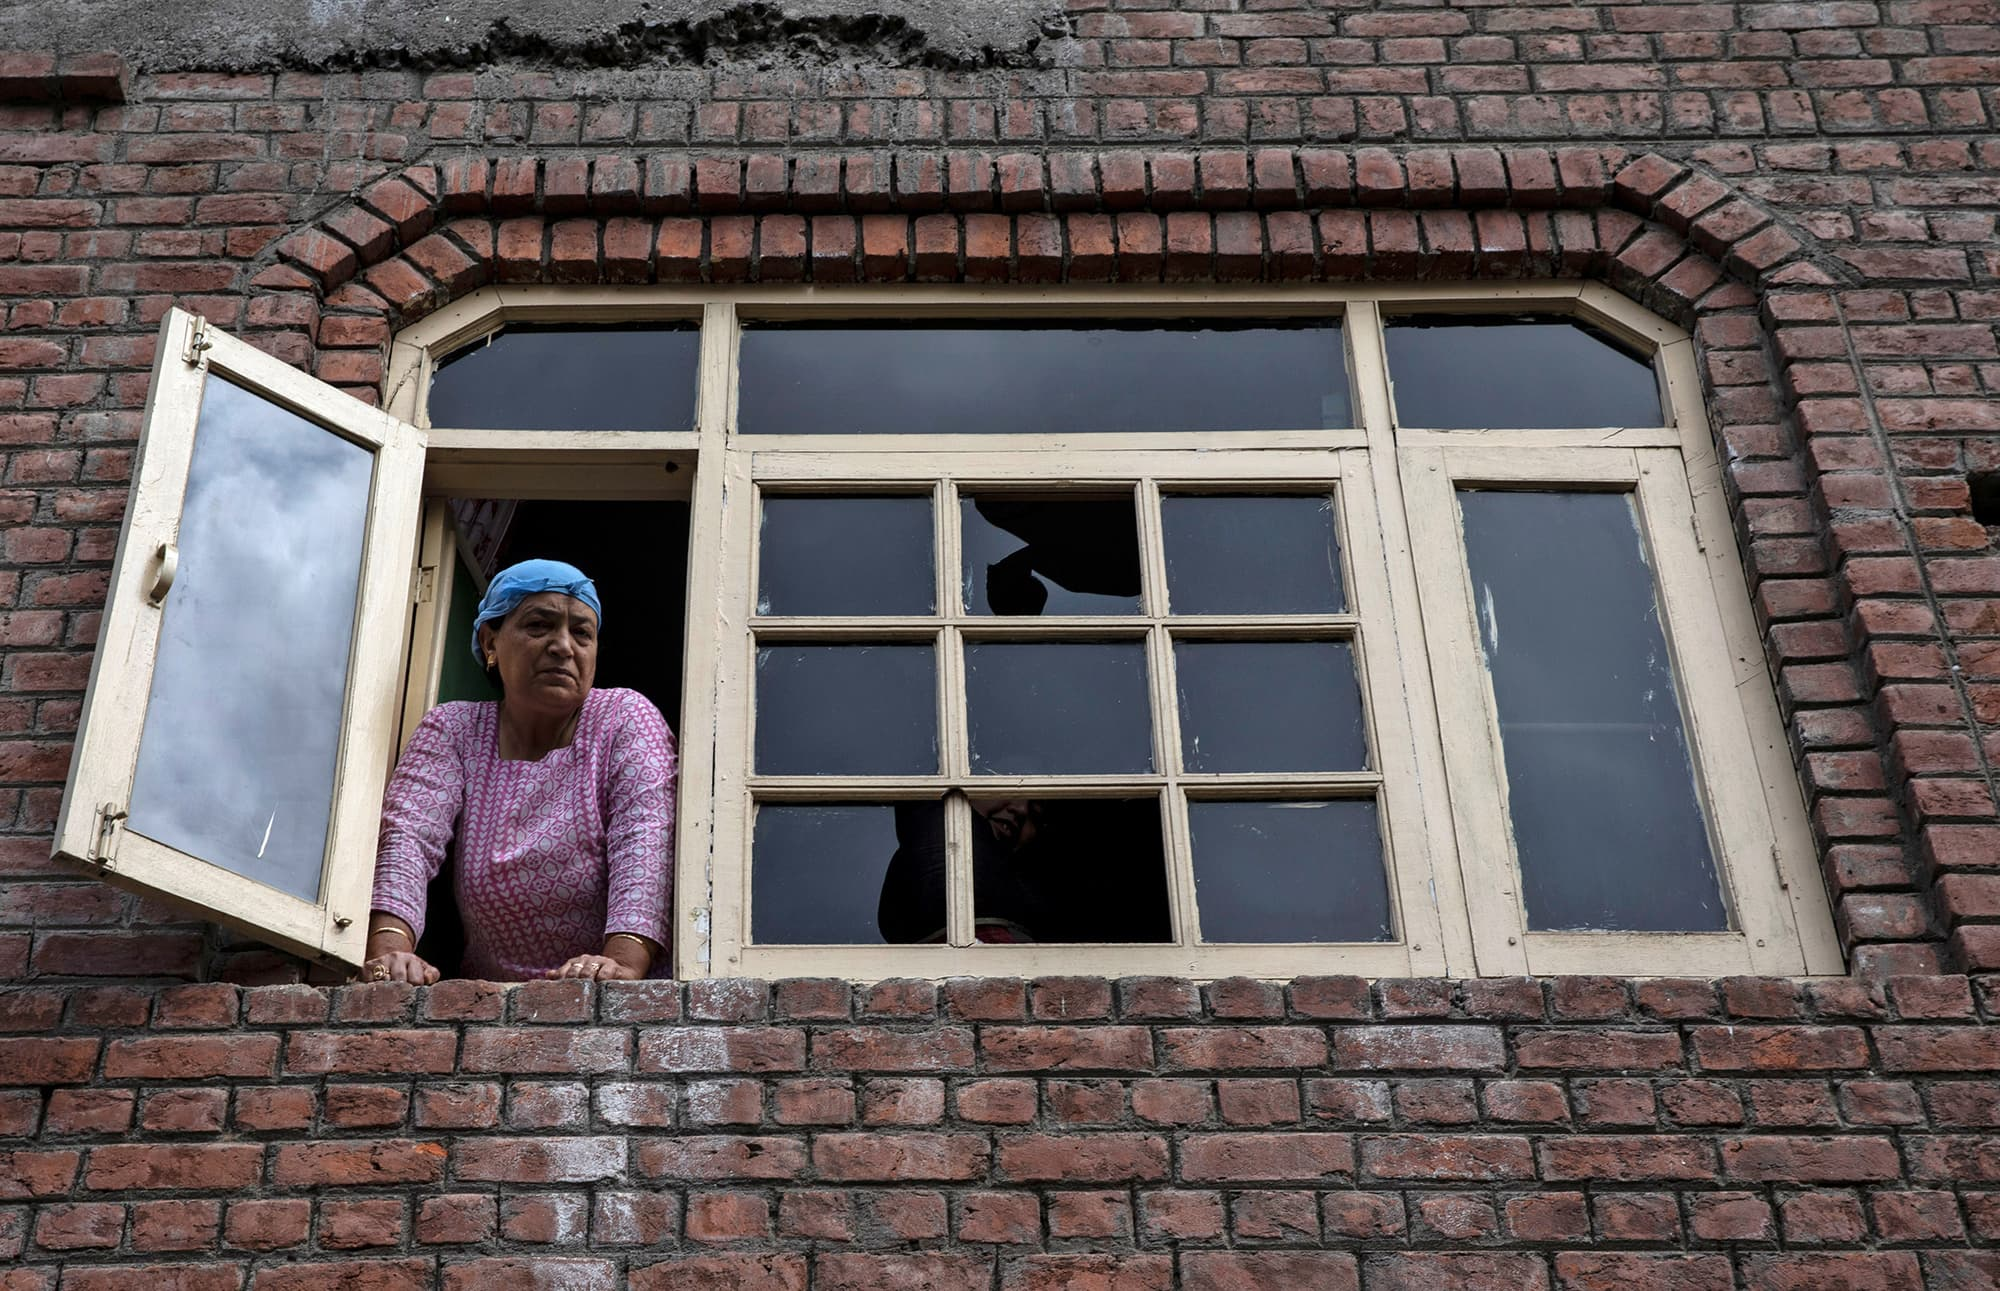 A Kashmiri woman looks out from a window of her house which was allegedly damaged by Indian security after clashes between protesters and the security forces during curfew in Srinagar. ─ Reuters